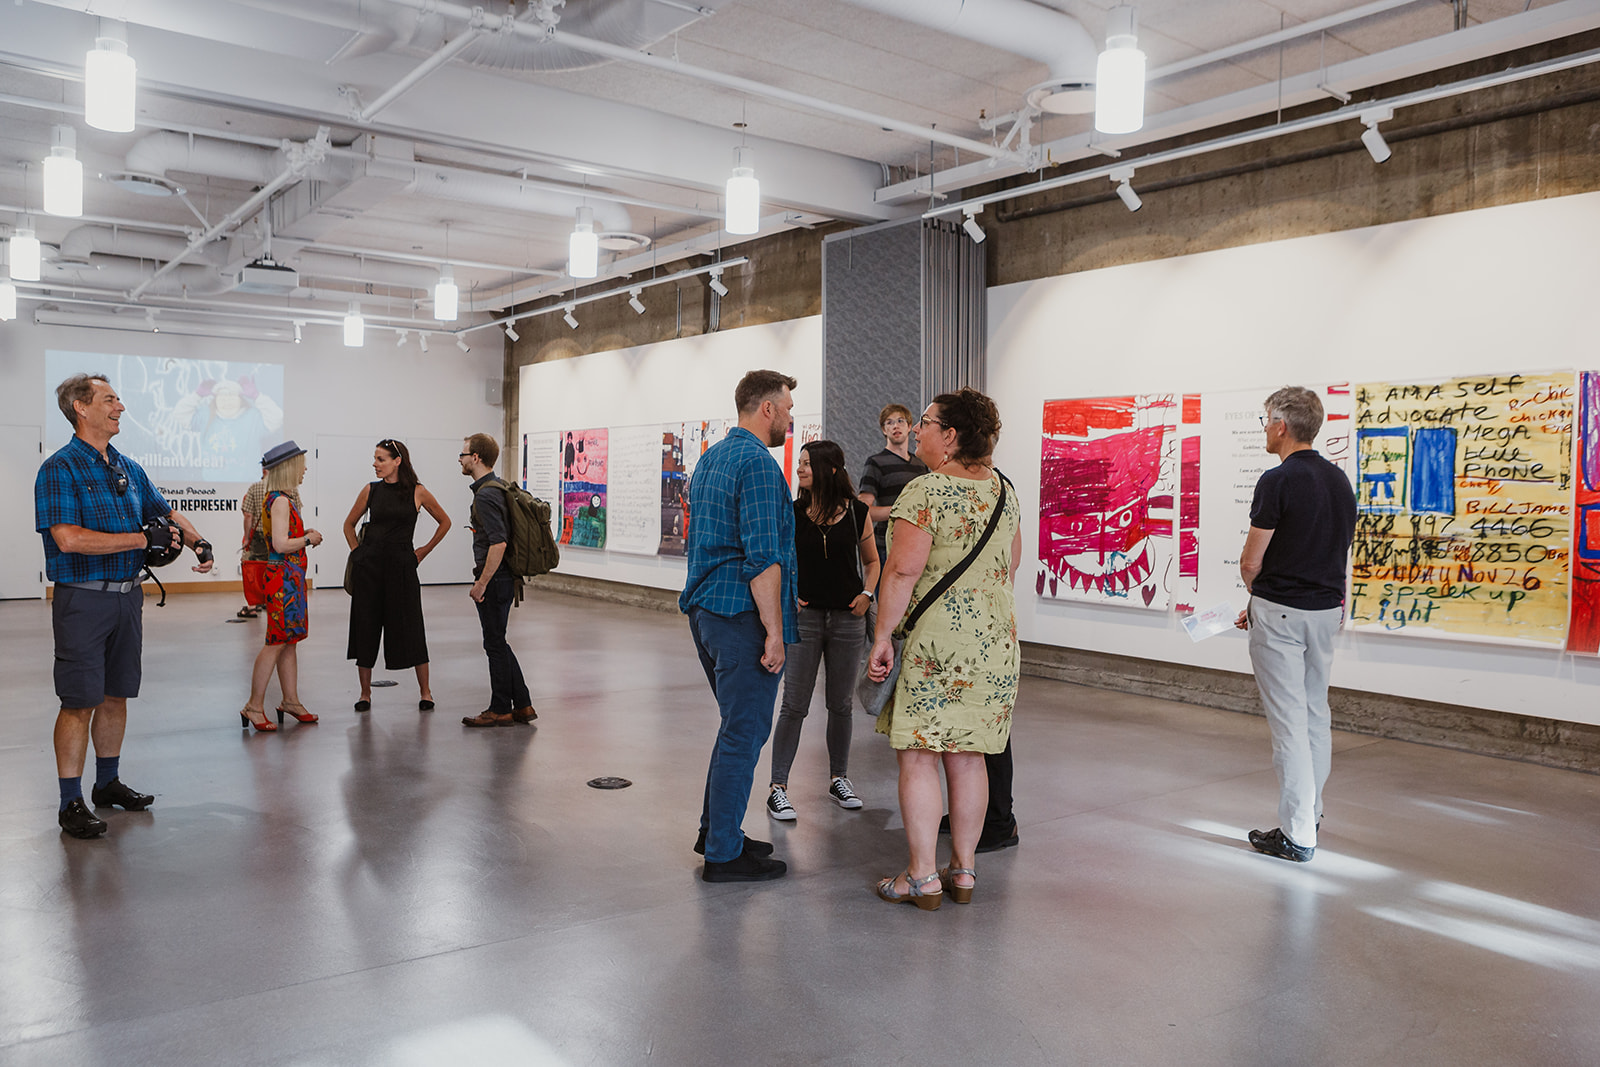 Groups of people are engaged in conversation at the opening of Born To Represent on July 22, 2019. Teresa's large colorful artwork hangs along one wall. Photo by Isabella Sarmiento, This Is It Studios.